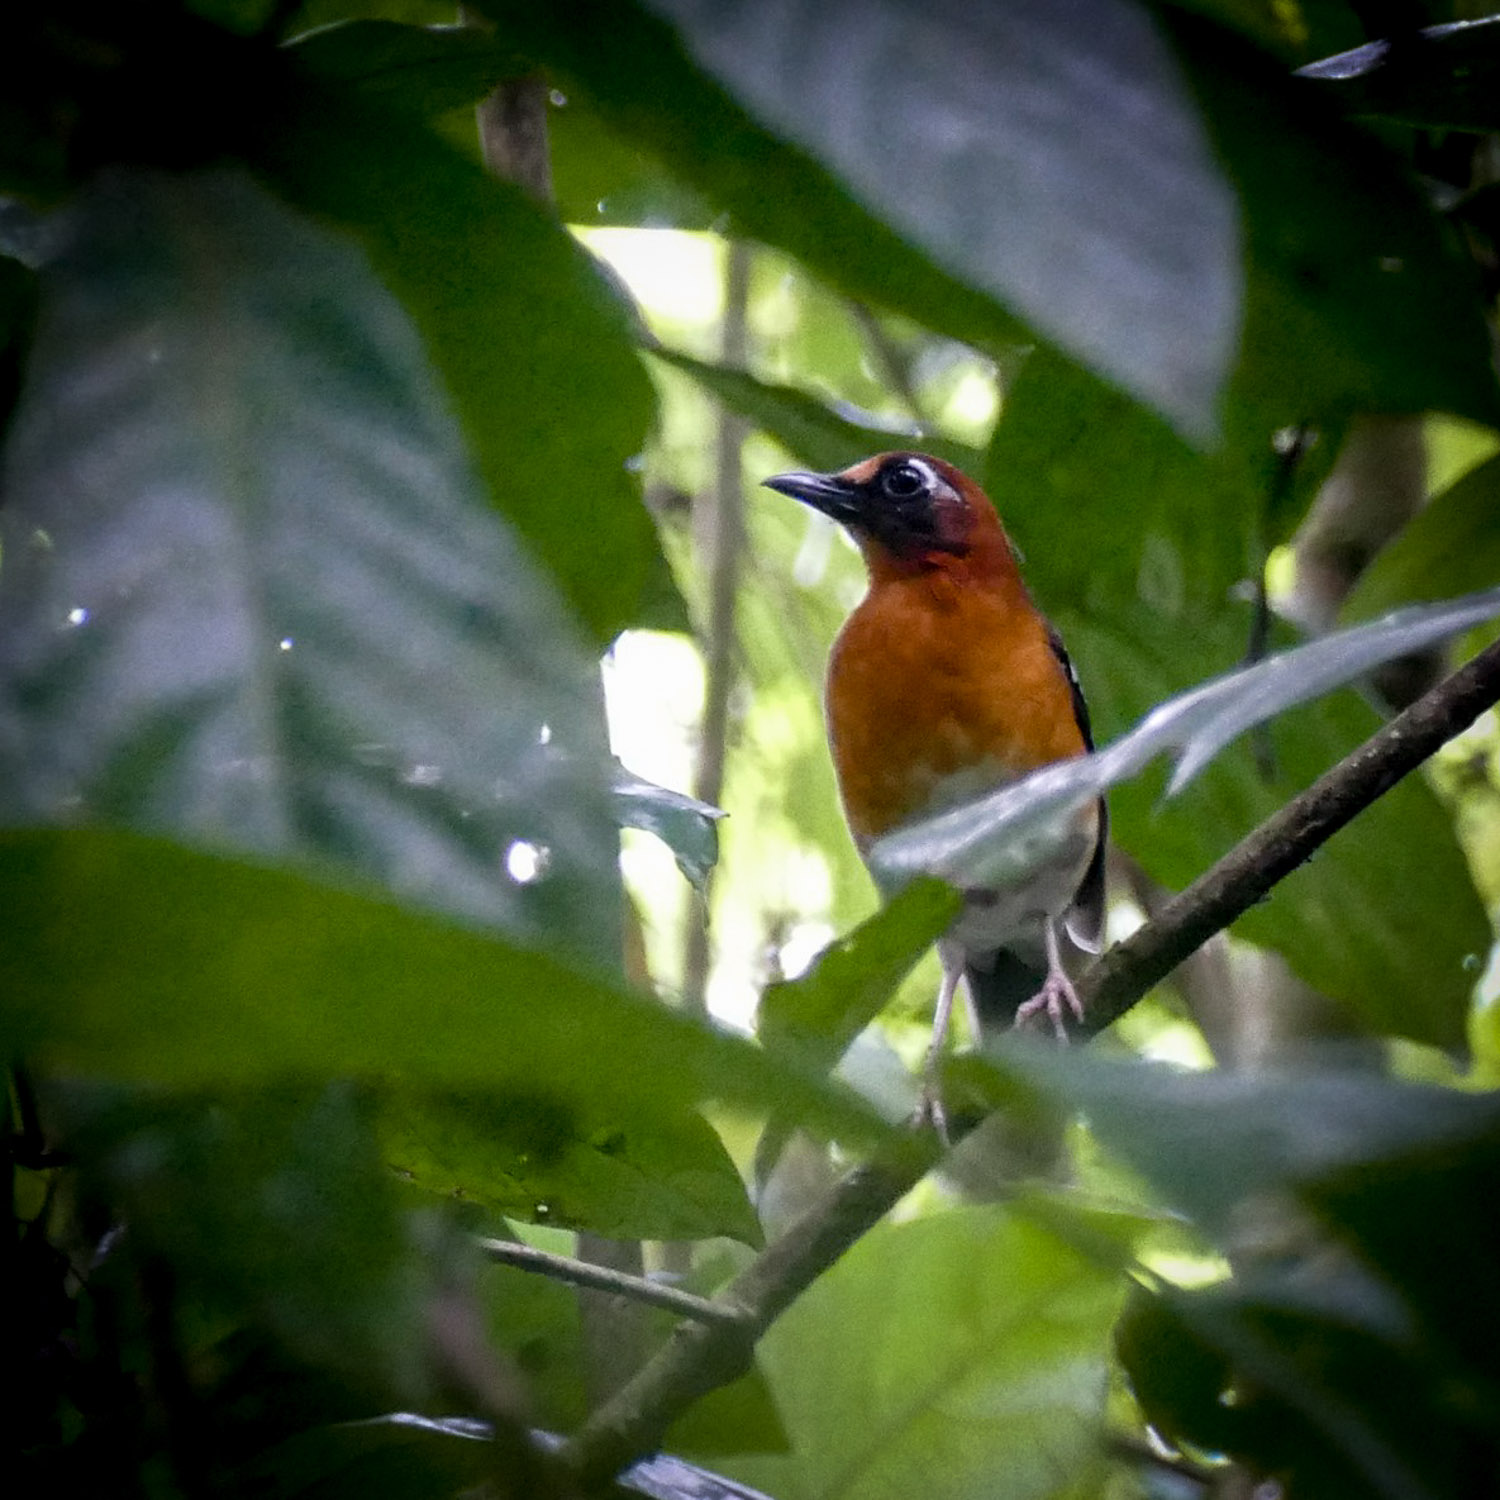 Noah's view of a Crossley's Ground-Thrush on Mount Kupe. Noah Strycker